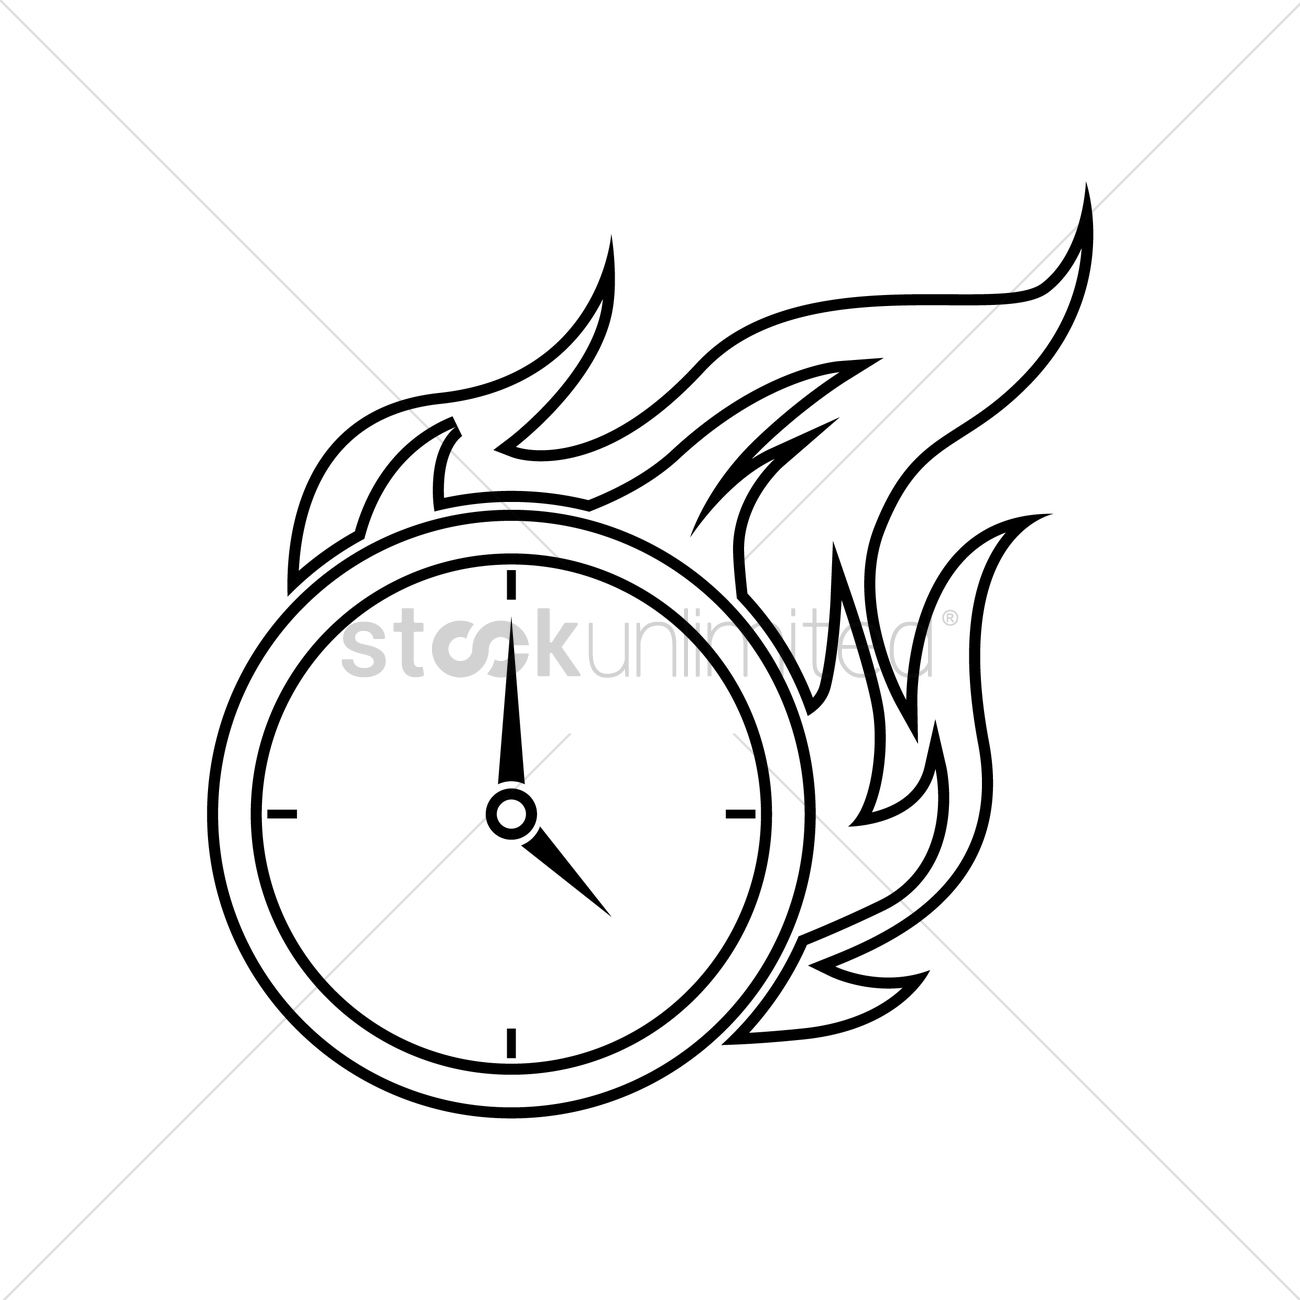 fire alarm icon vector image 2005770 stockunlimited rh stockunlimited com